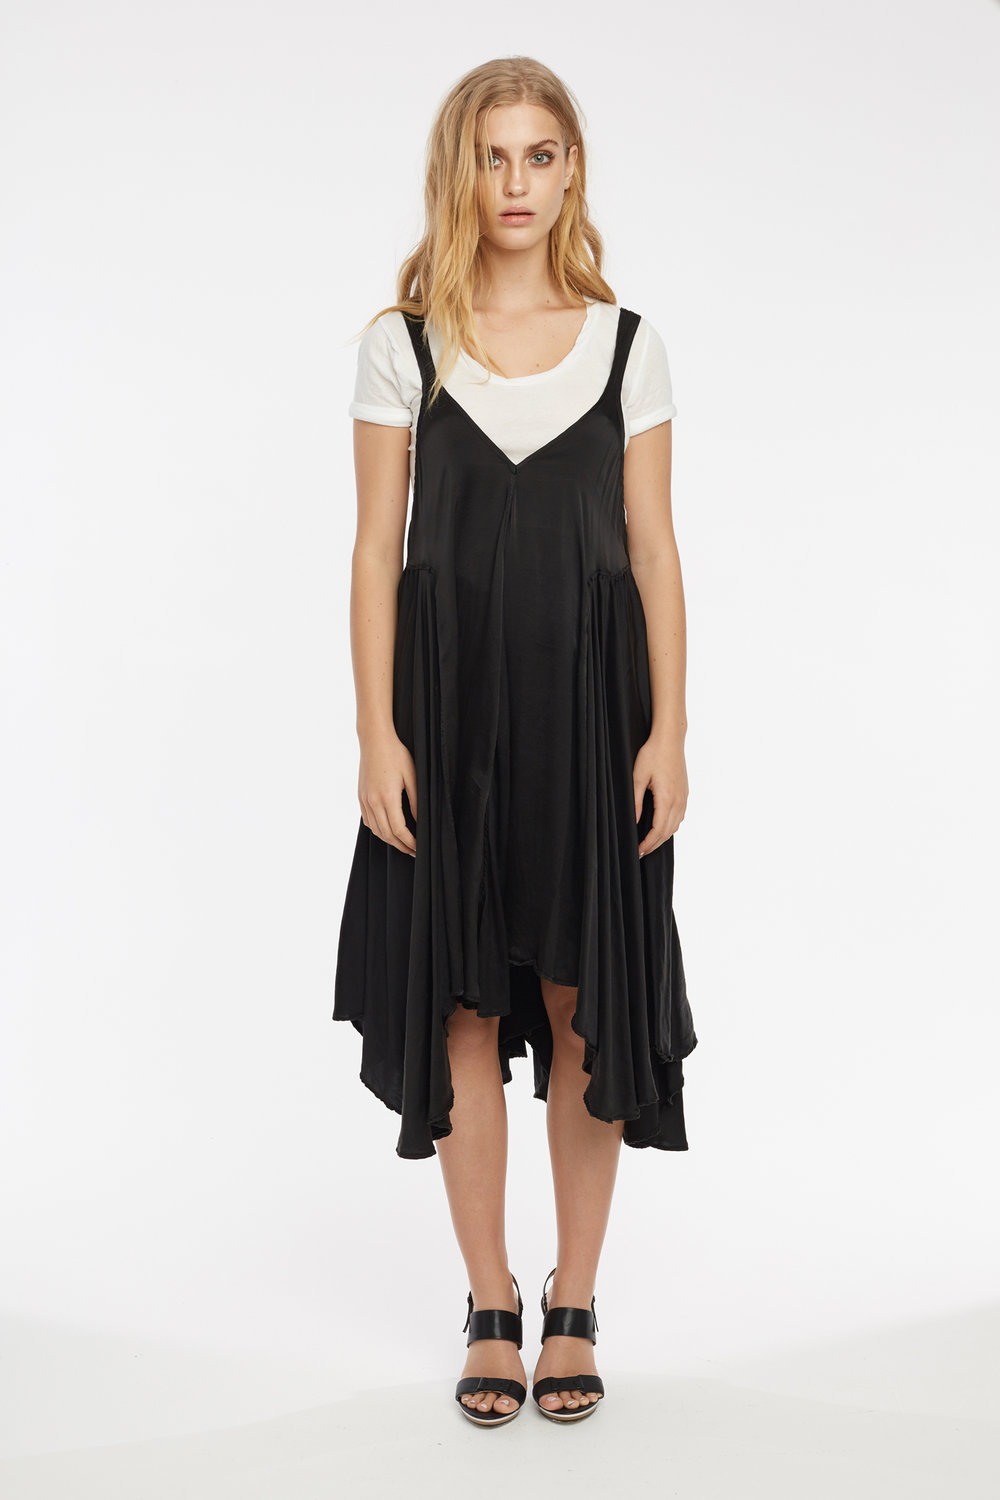 NEDAY TEE BLANC. BOCS DRESS NOIR